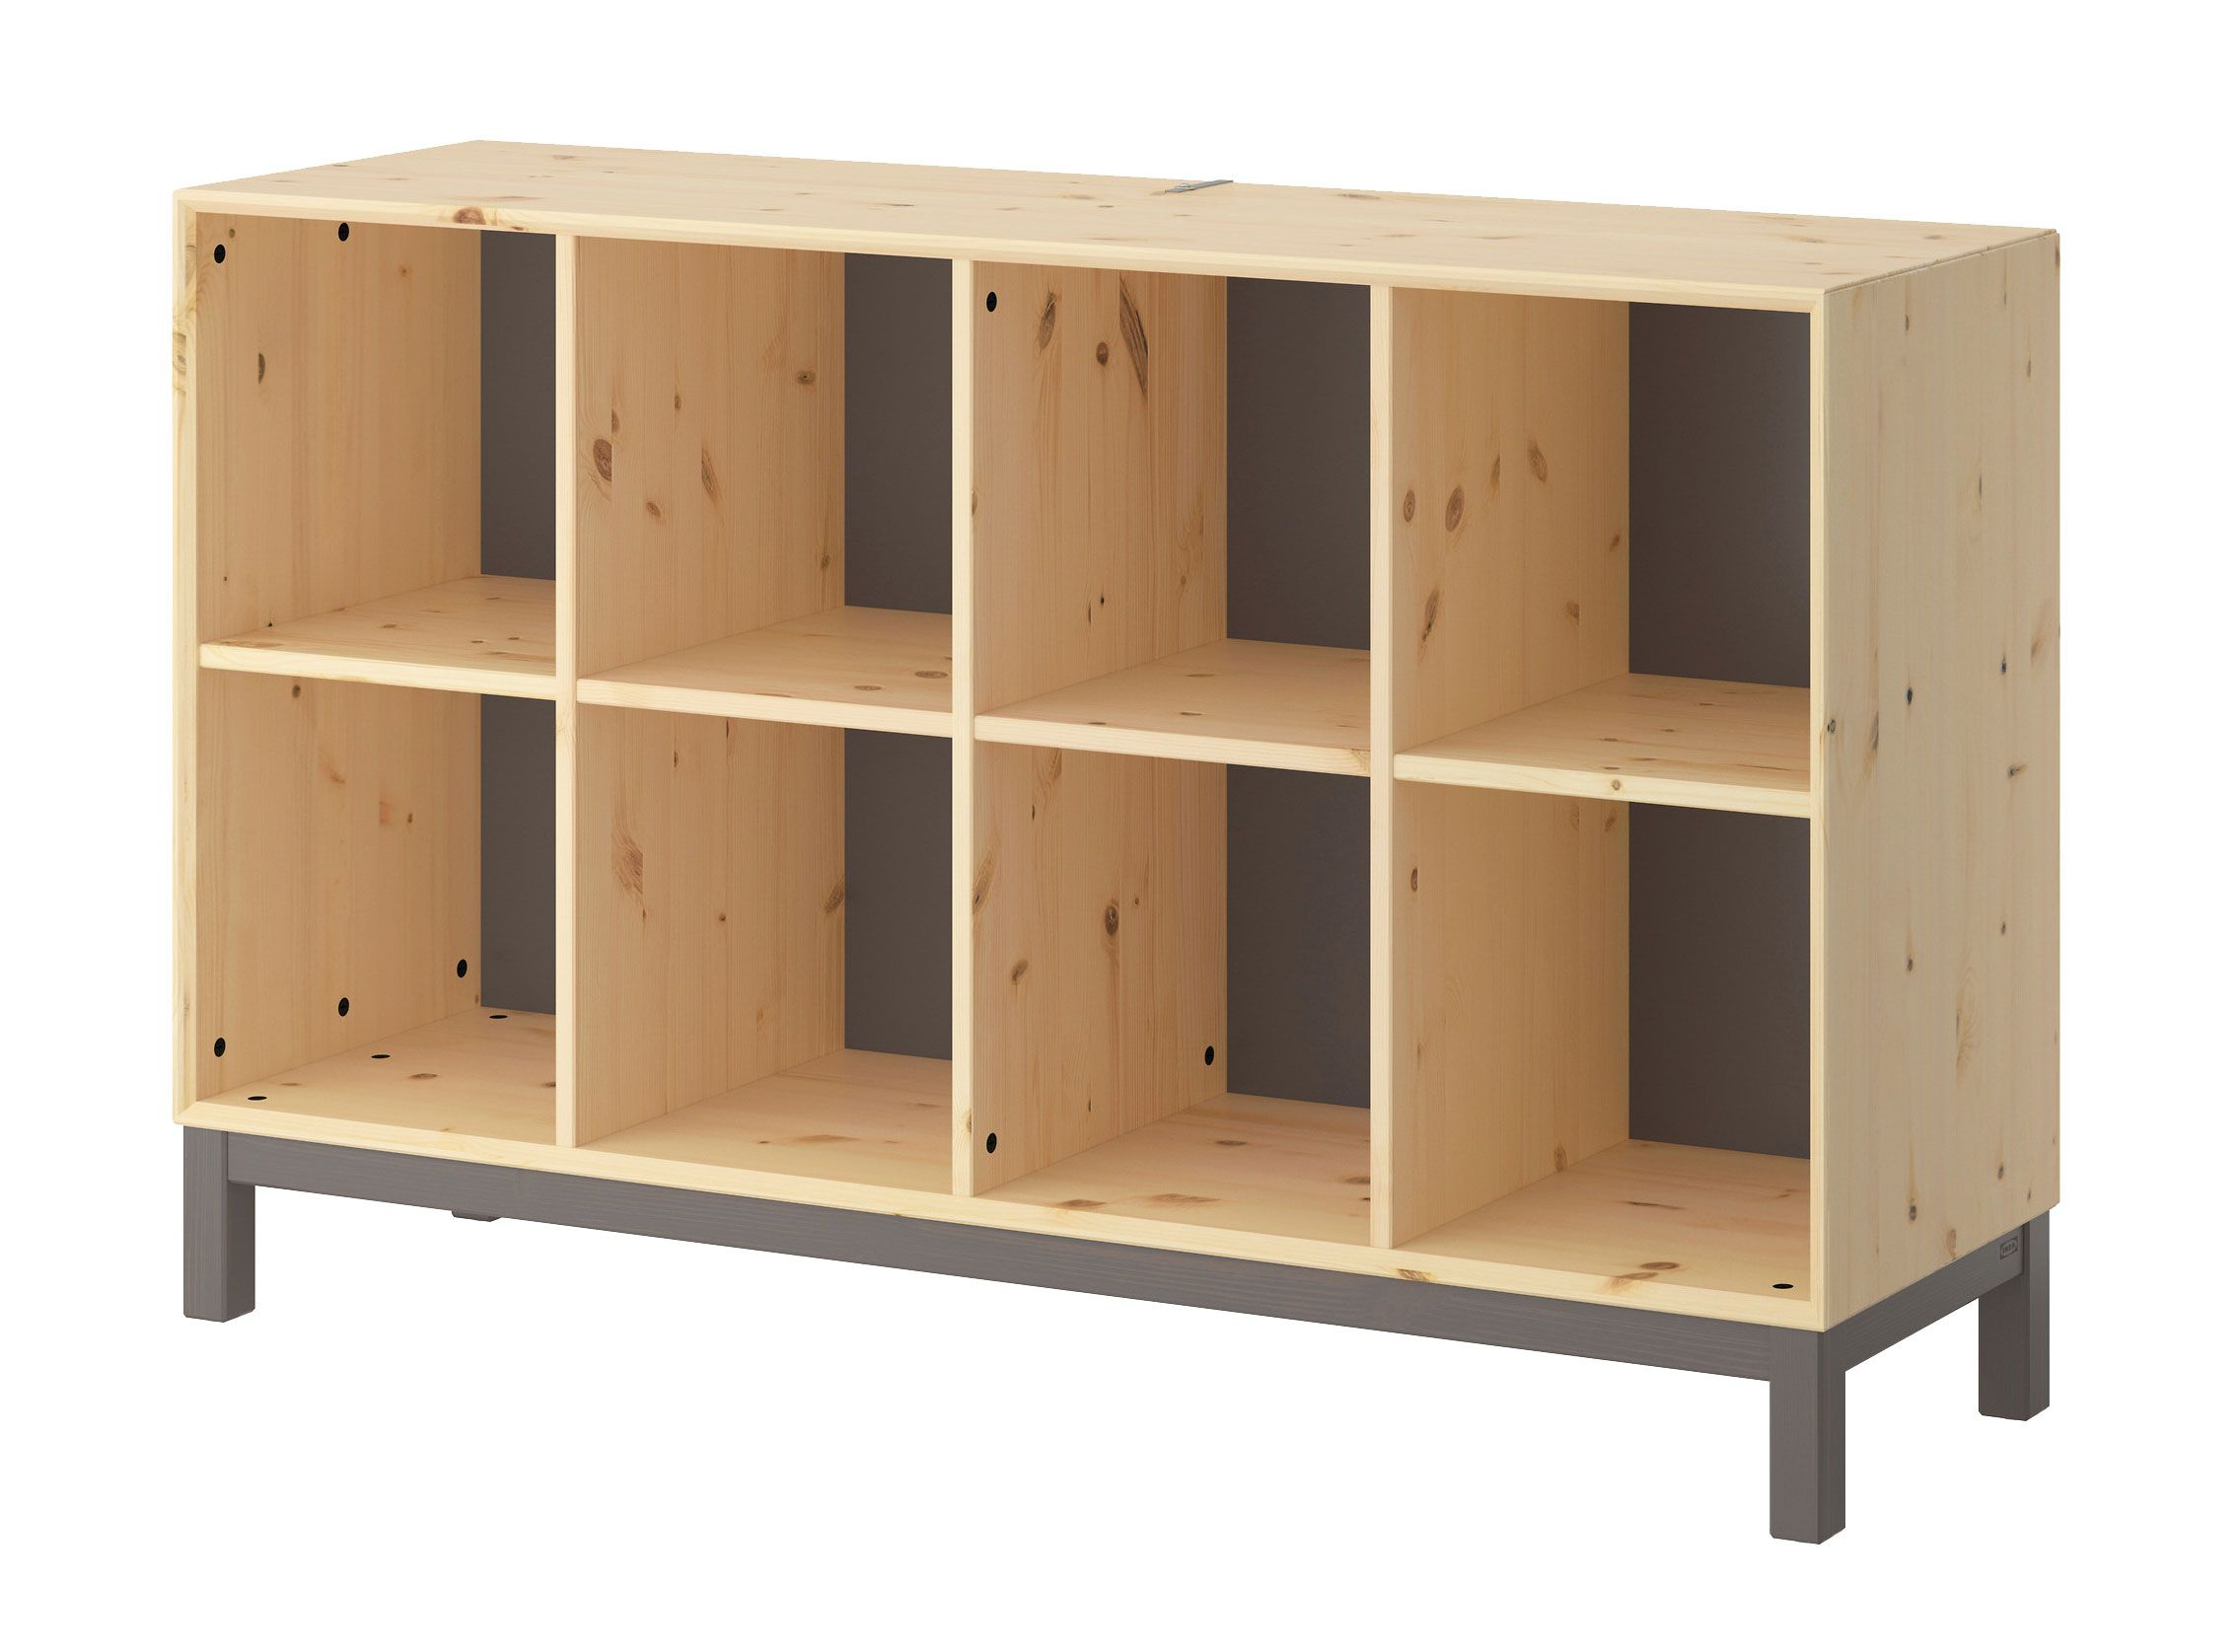 hight resolution of norn s sideboard basic unit ikea instead of two fold up tables for placing volunteer snacks 2 of these side by side gives table space for food